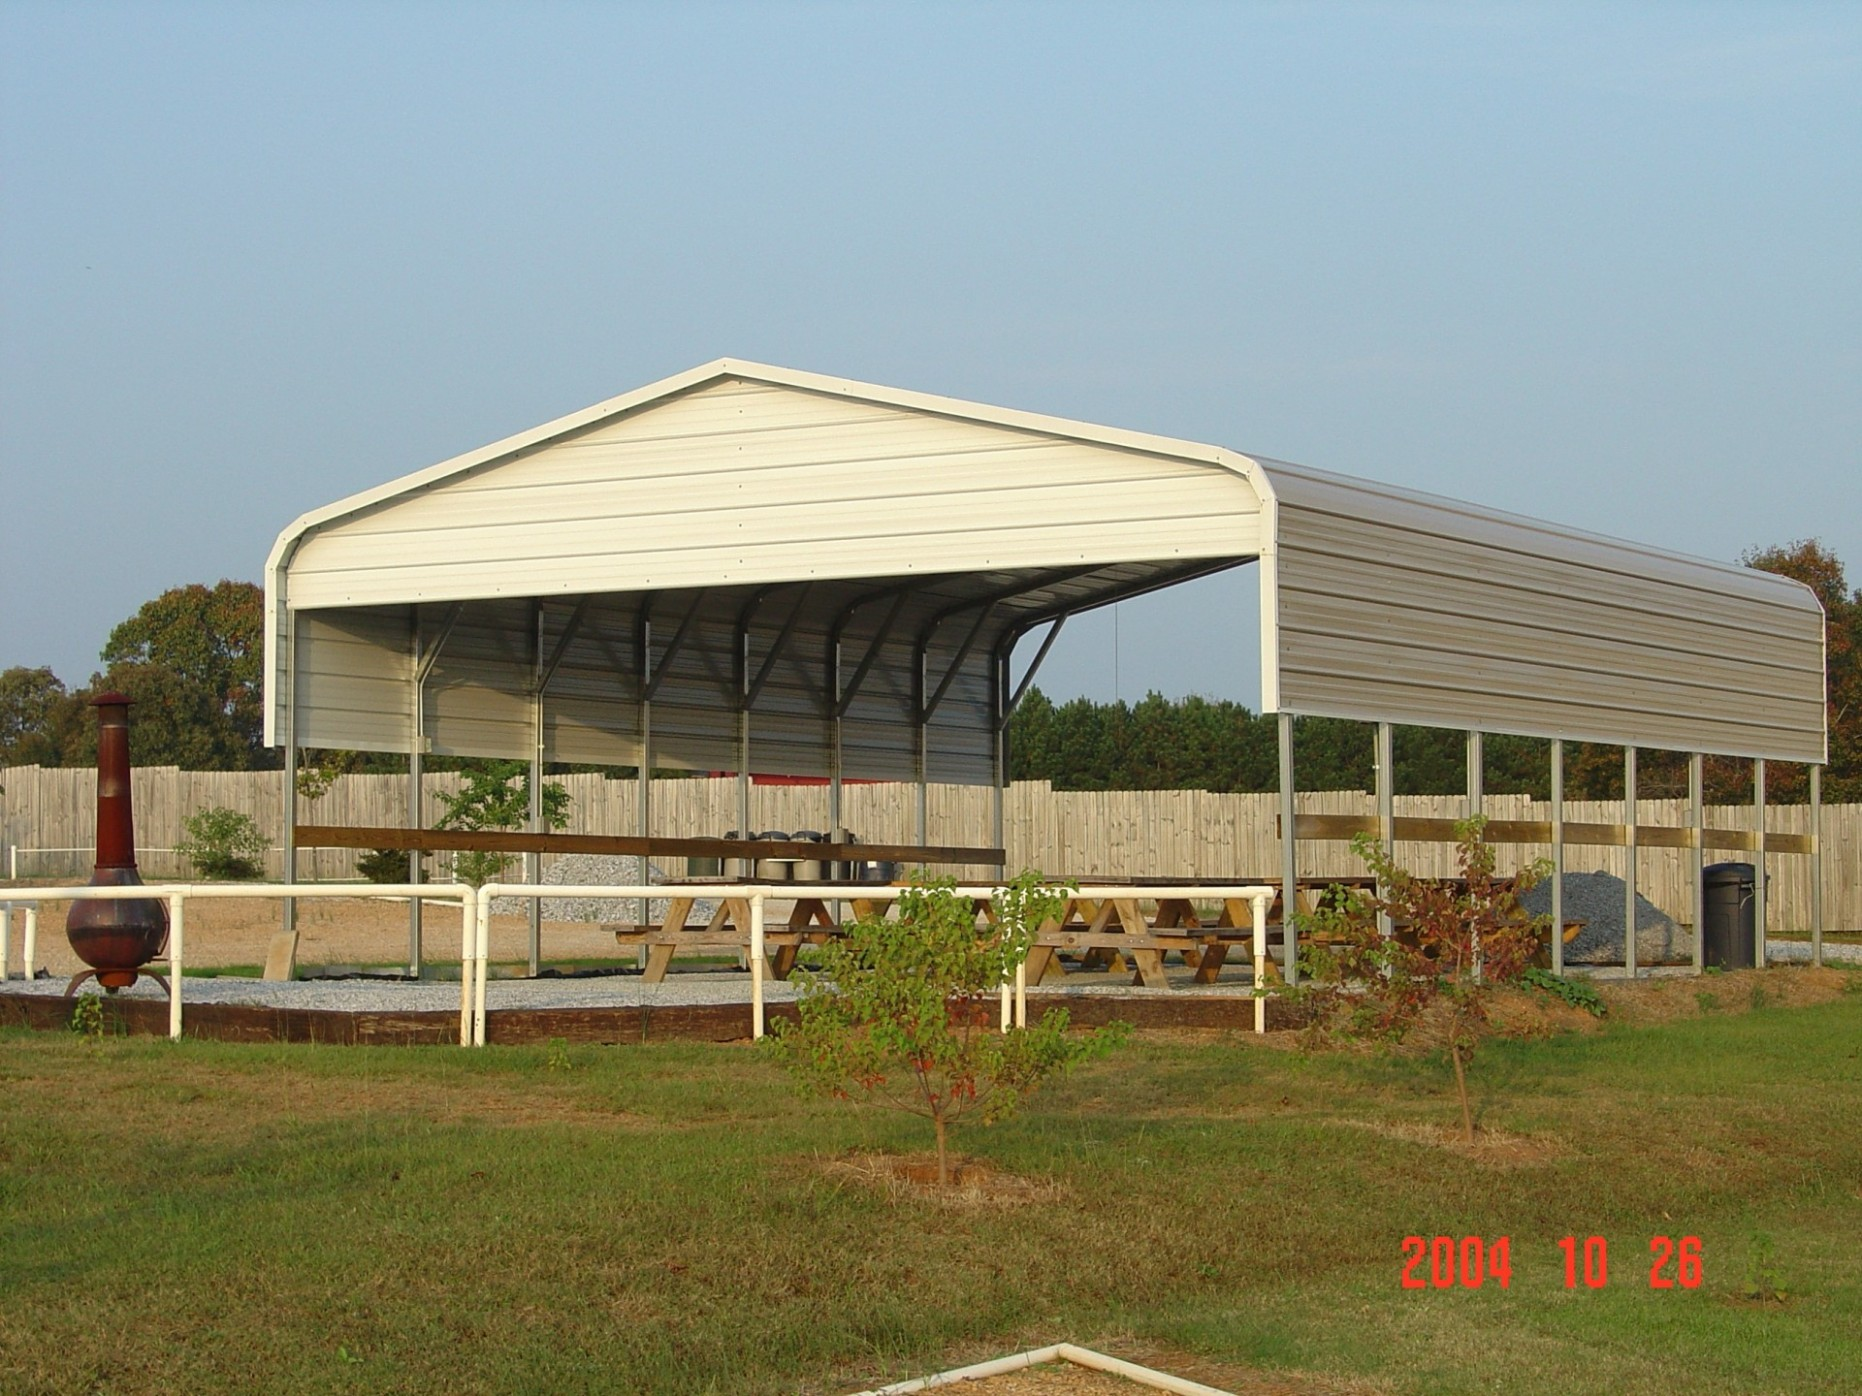 1517924221-metal-carports-portable-steel-carports-for-sale-portable-metal-carport-for-sale.jpg